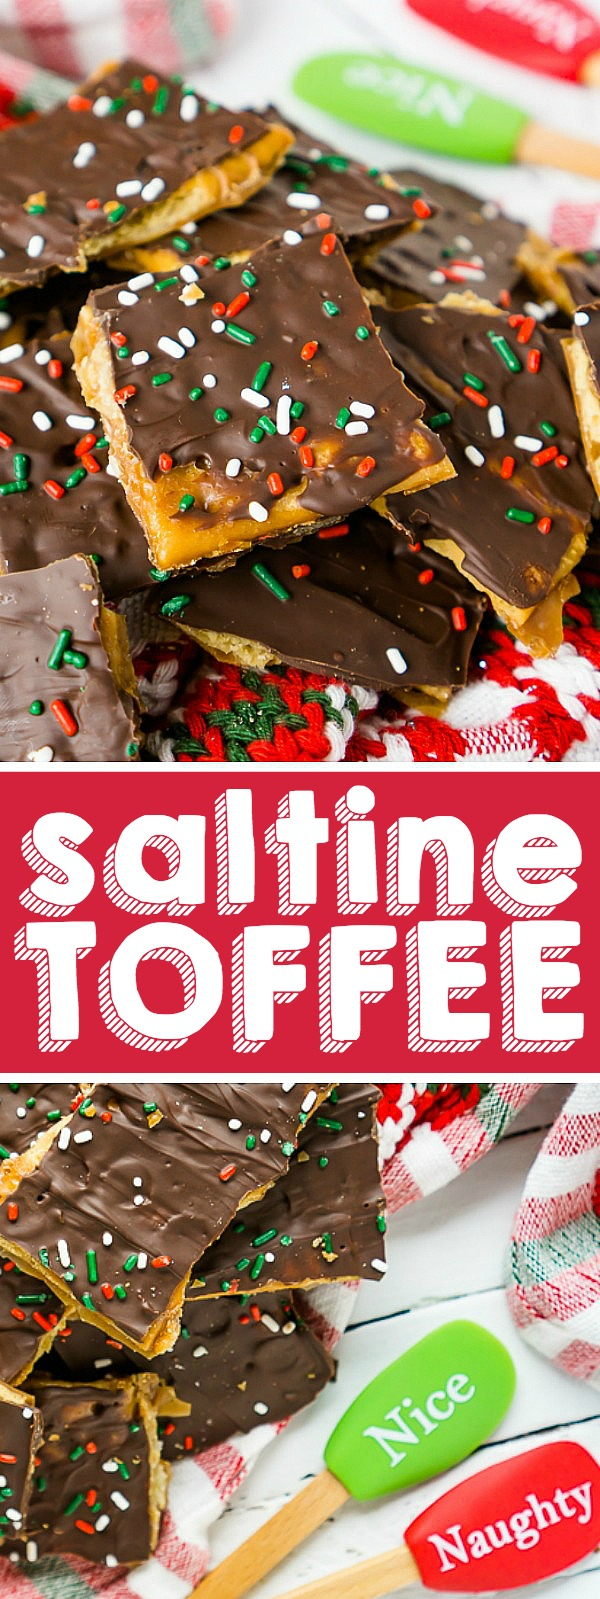 Saltine Toffee is a quick and easy Christmas Candy that is an addicting sweet and salty holiday treat! Known by many as Christmas Crack, this is a candy recipe you will definitely want to add to your holiday menu! | THE LOVE NERDS #christmascandy #christmasdessert #candyrecipe #holidayrecipe